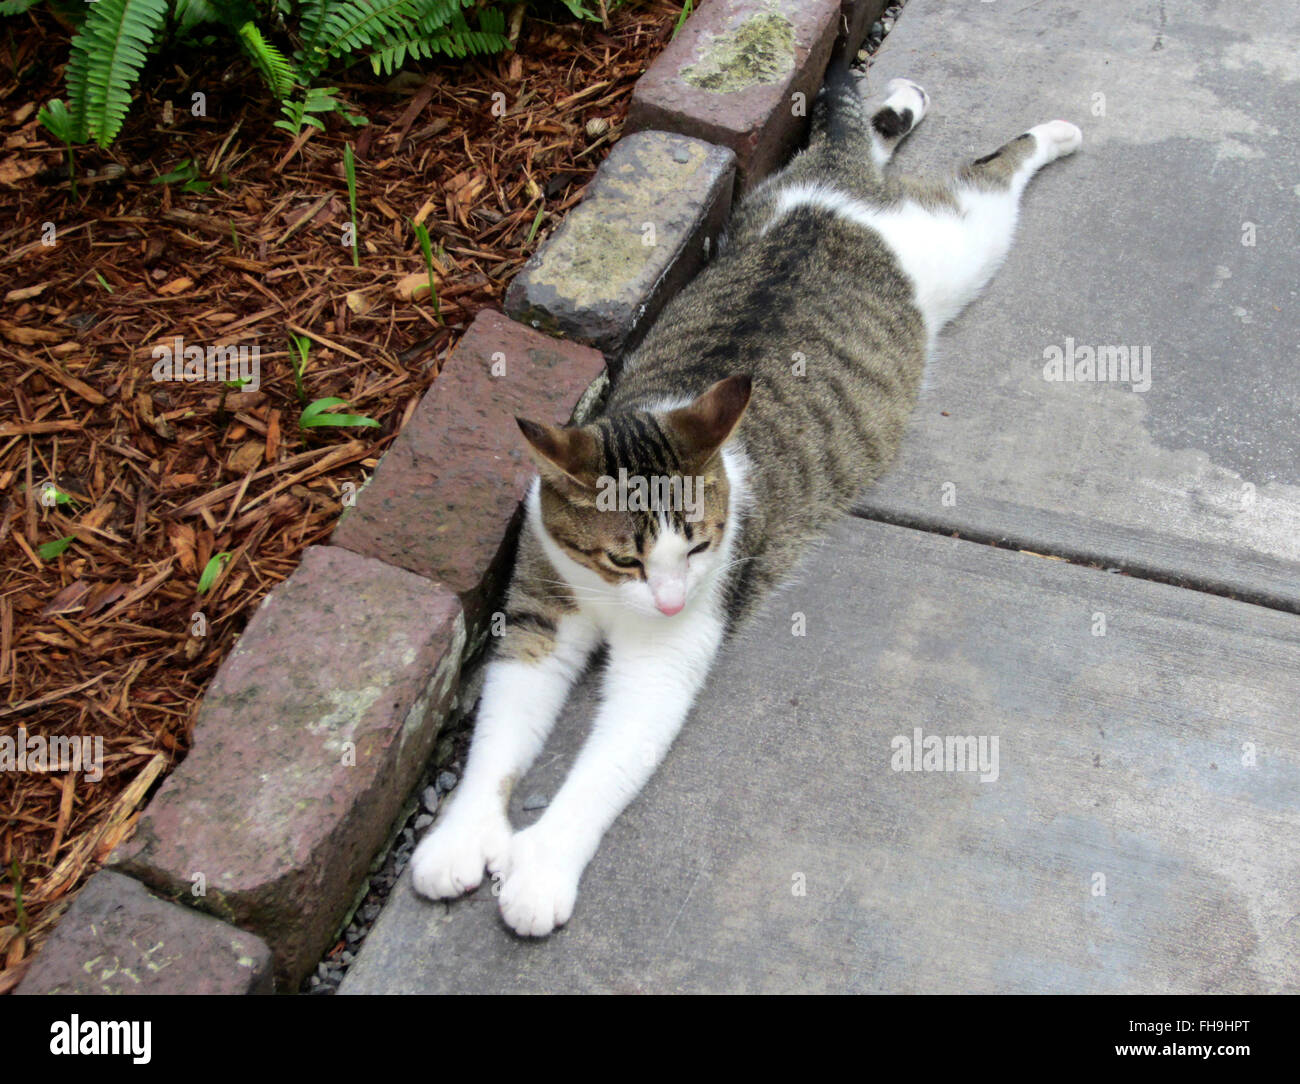 A six-toed cat stretches out on the grounds of The Ernest Hemingway Home and Museum in Key West, Florida. Stock Photo